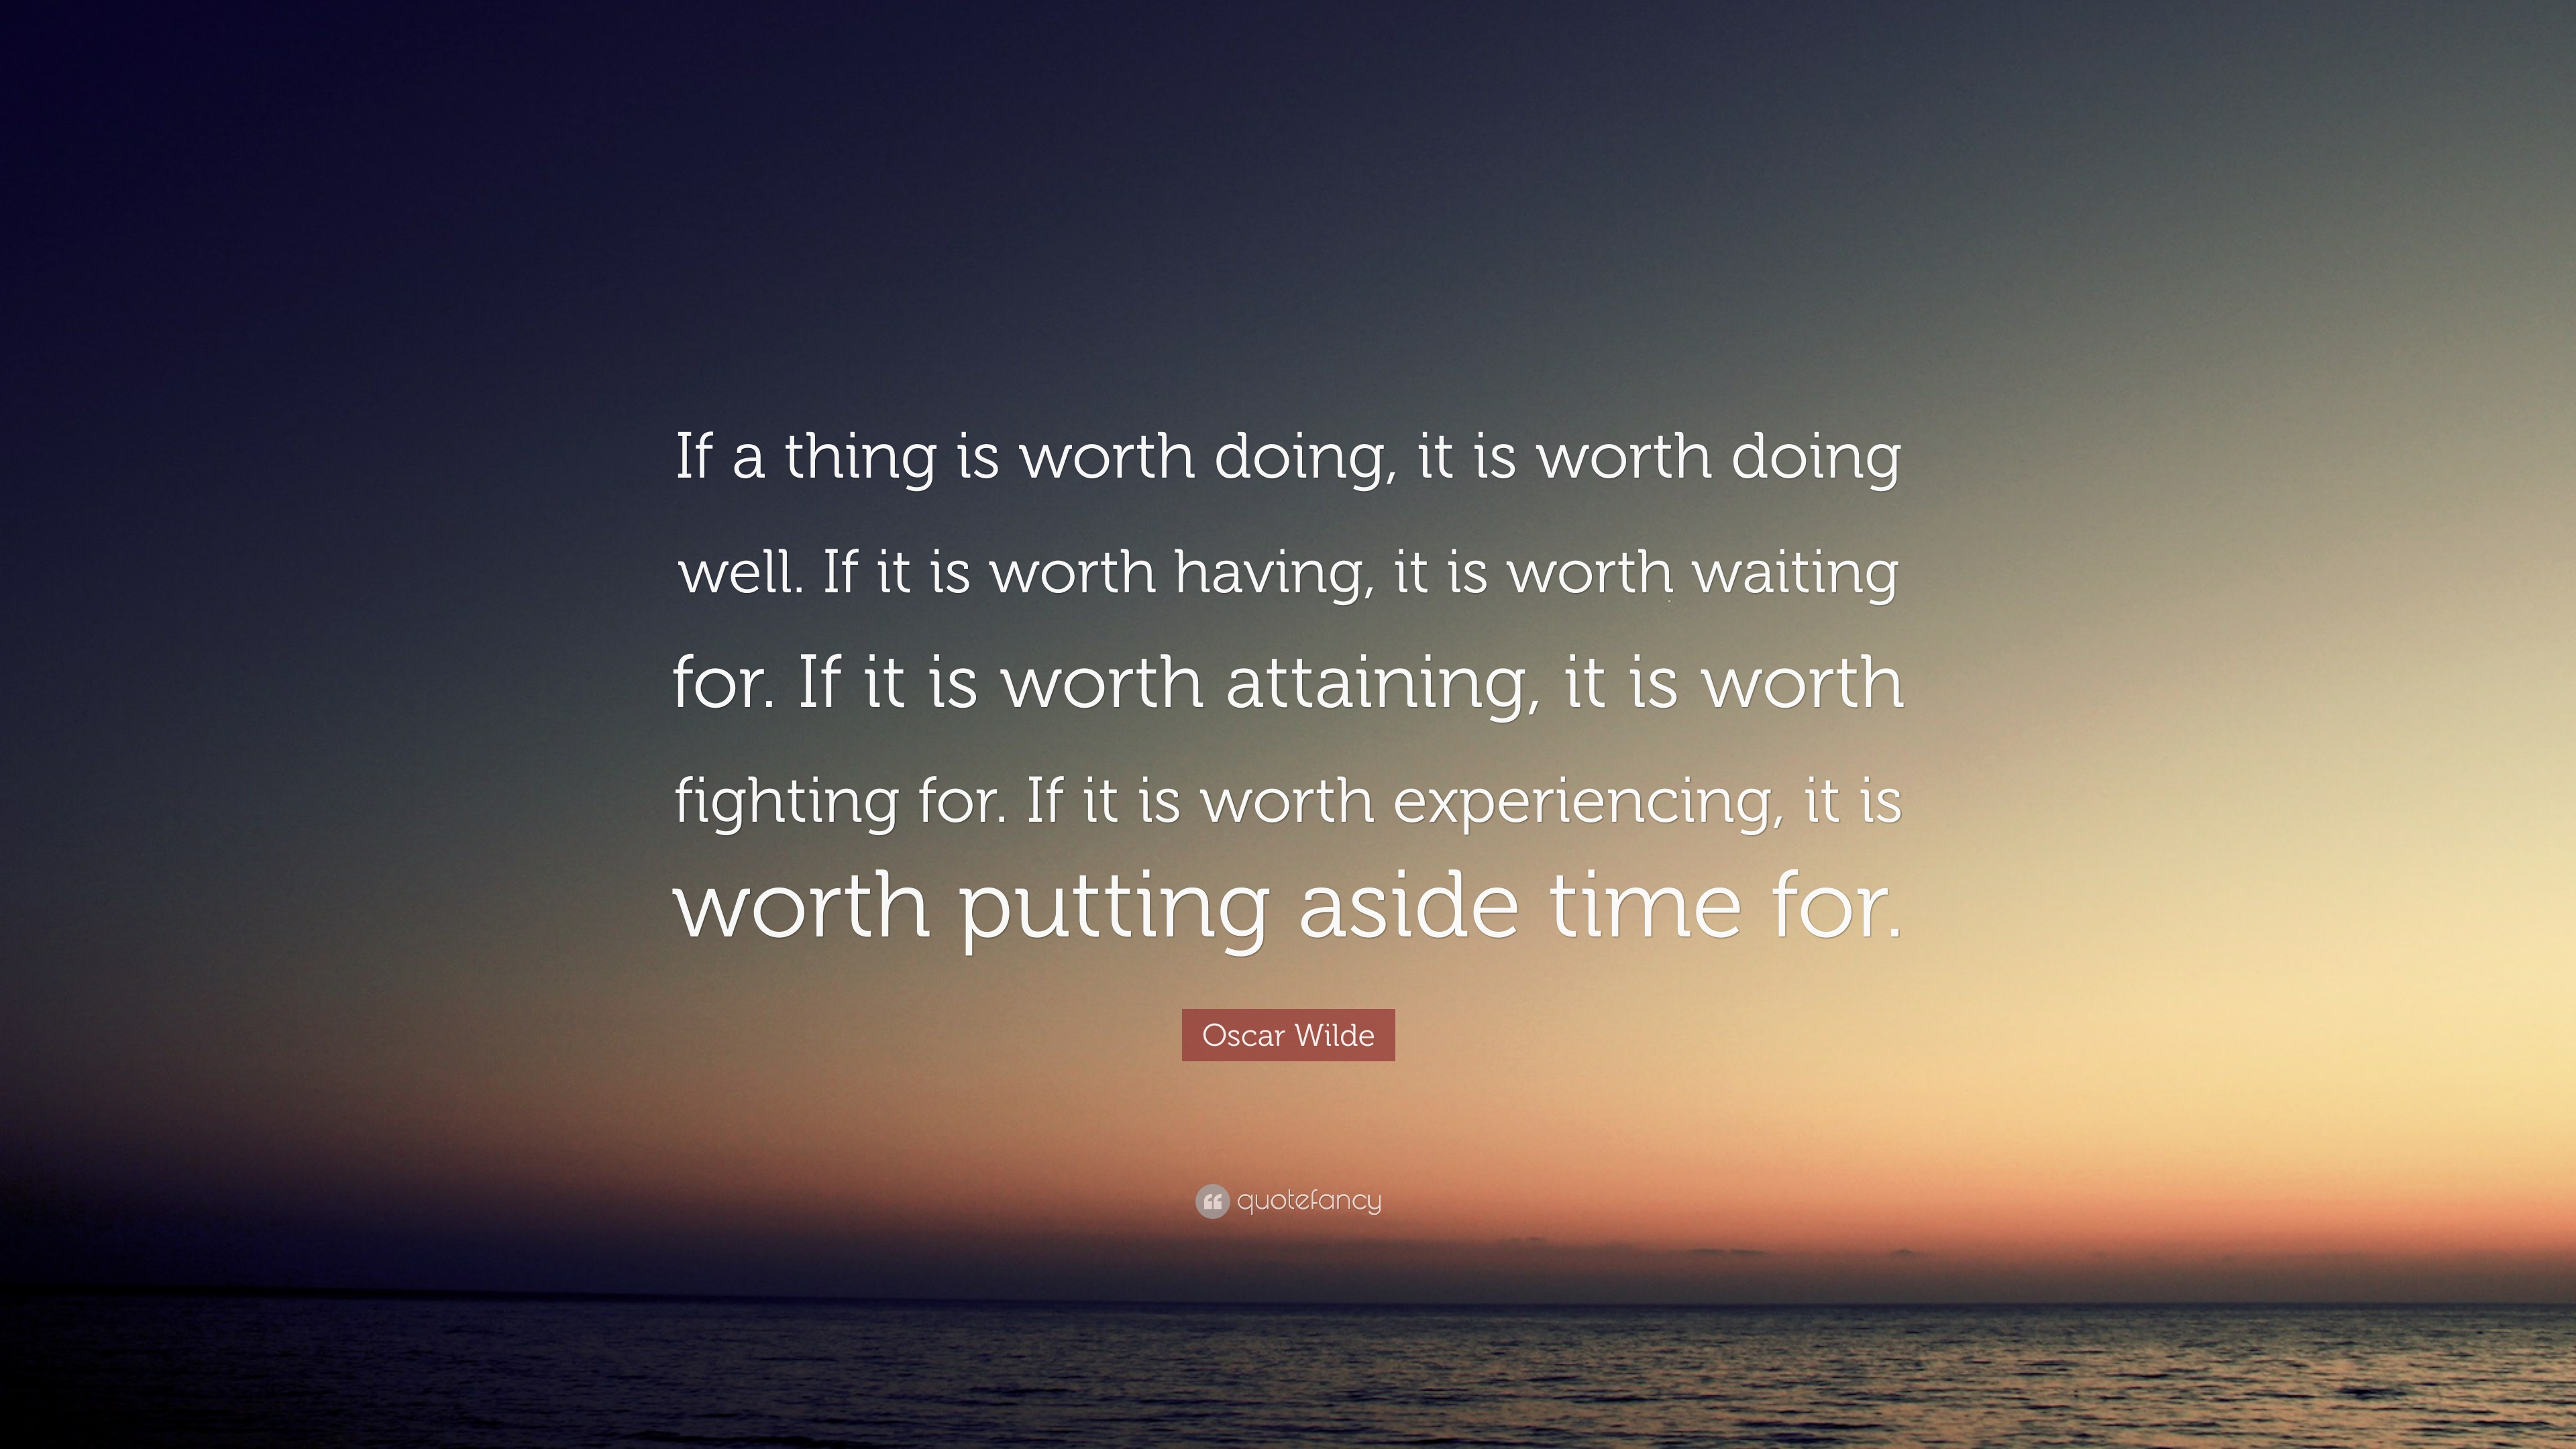 Oscar Wilde Quote If A Thing Is Worth Doing It Is Worth Doing Well If It Is Worth Having It